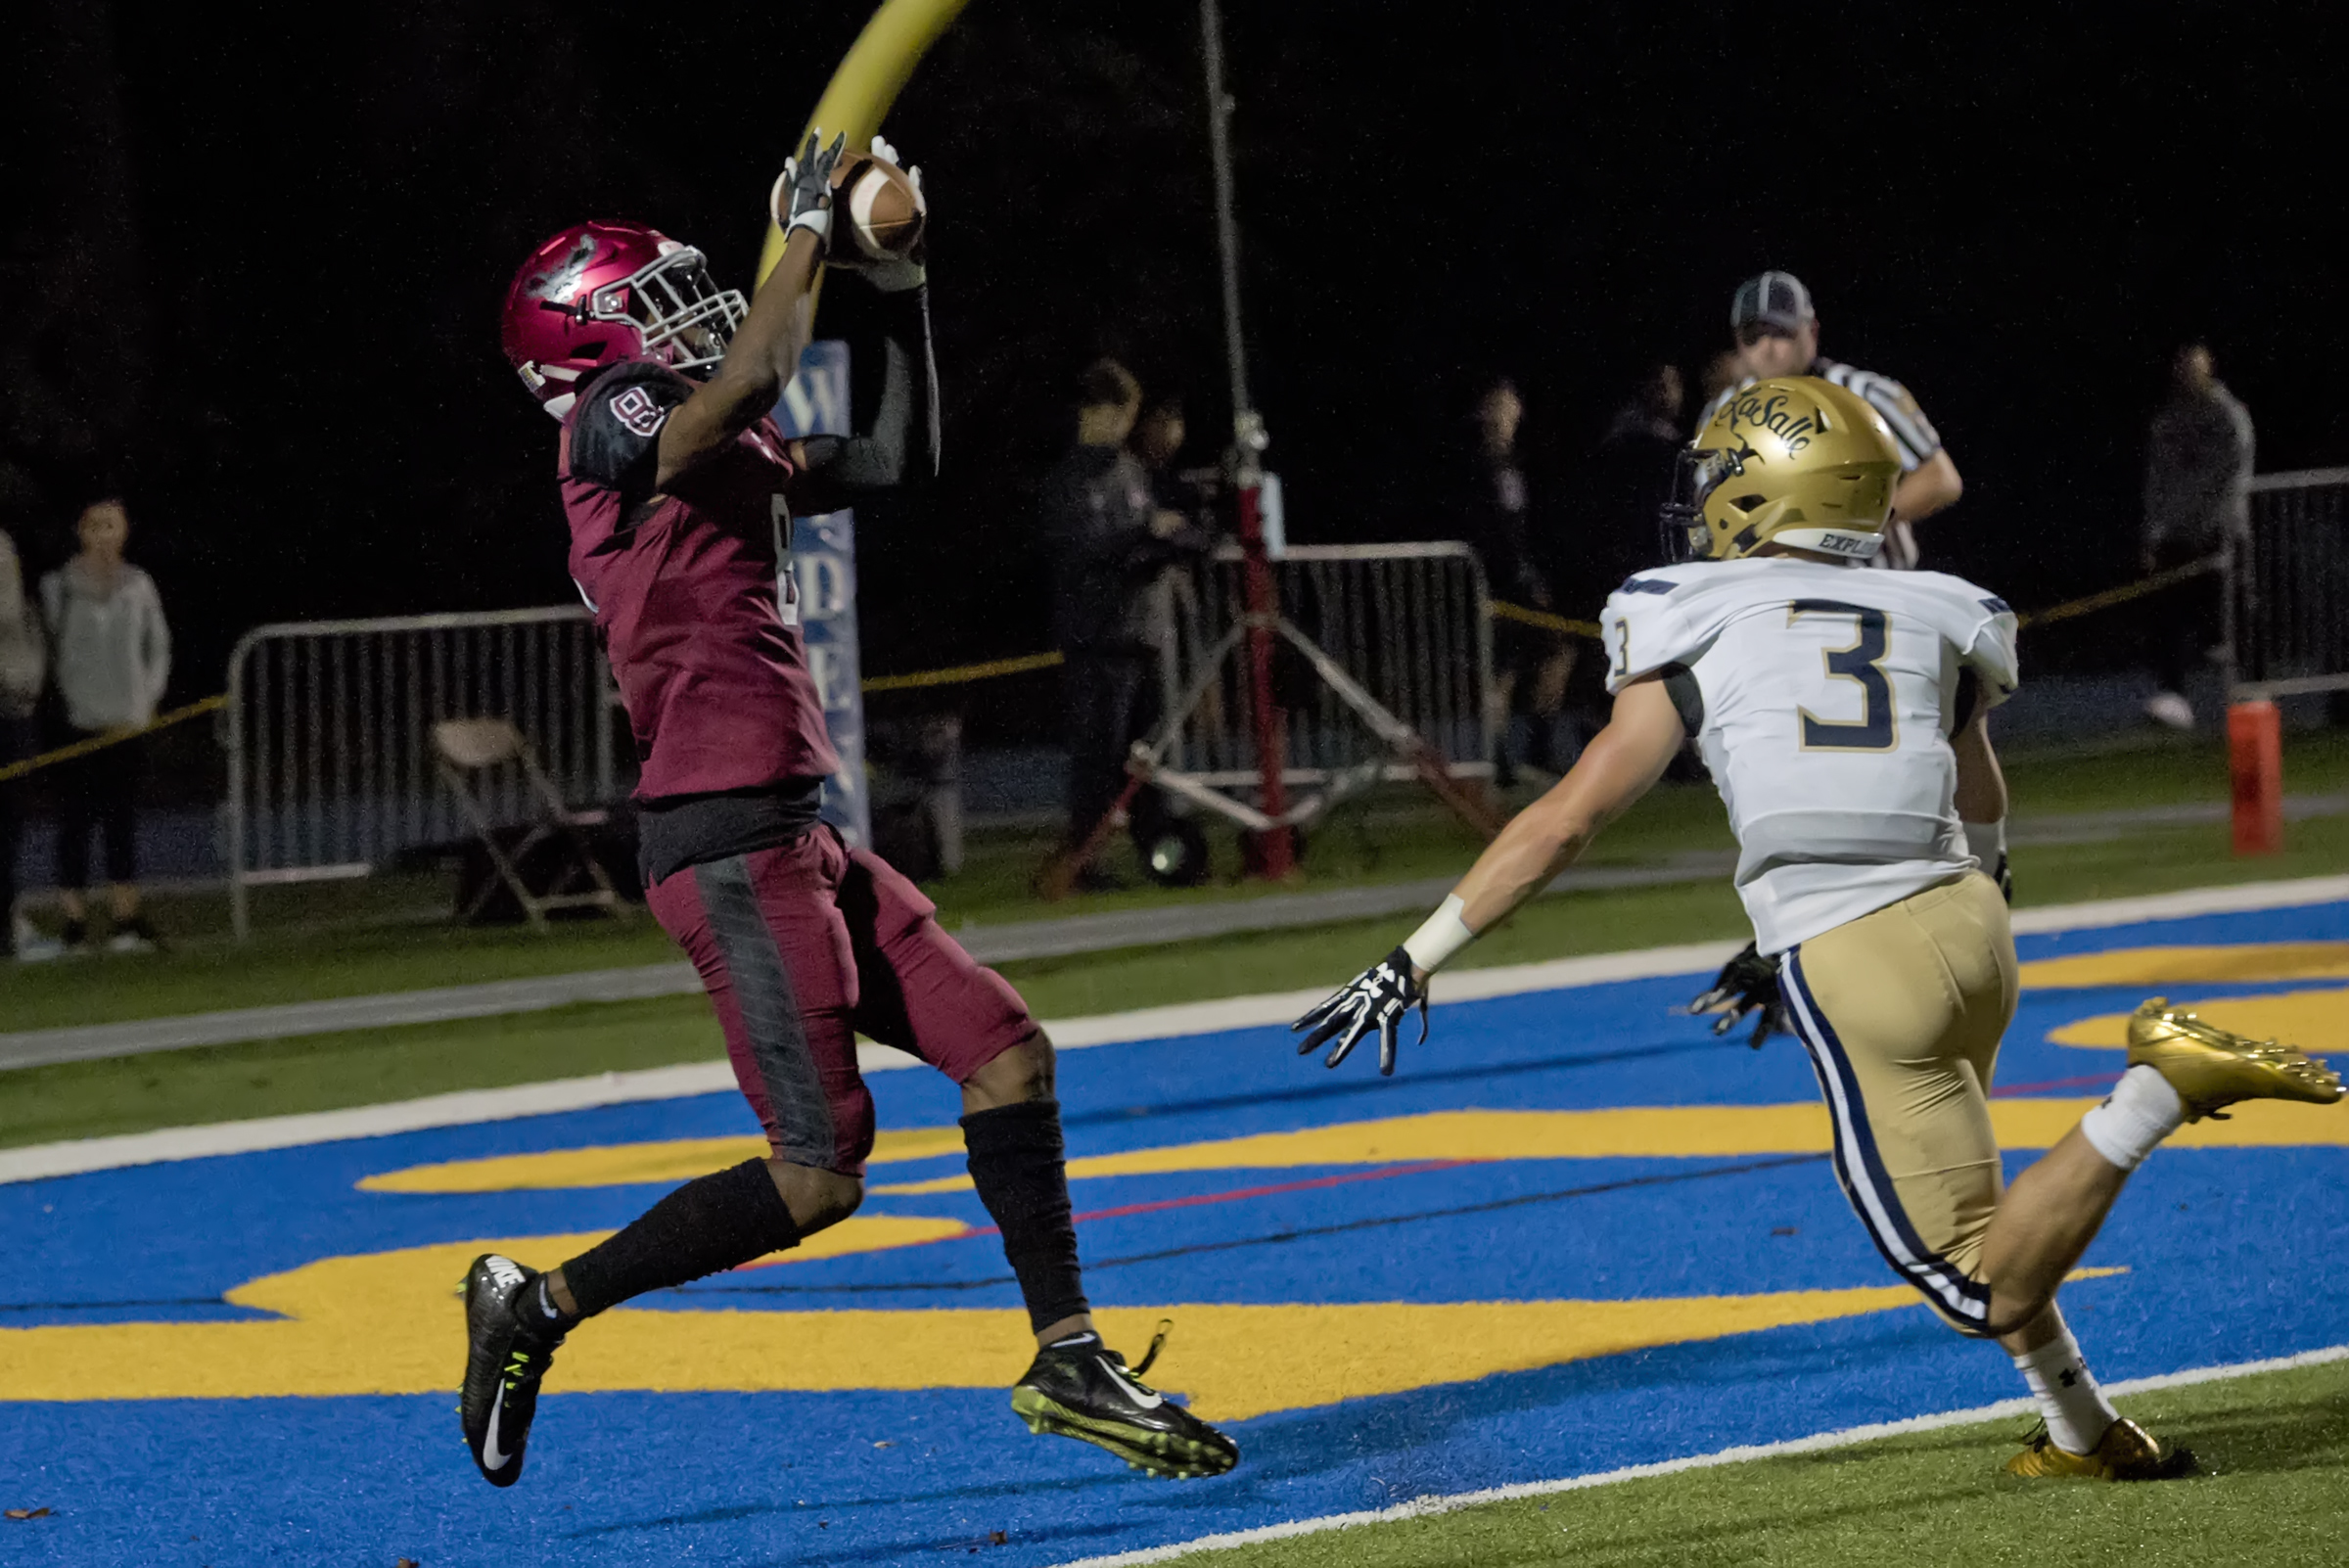 St. Joseph´s Prep sophomore Marvin Harrison makes a first-half touchdown catch in last Friday´s 49-12 win over La Salle.